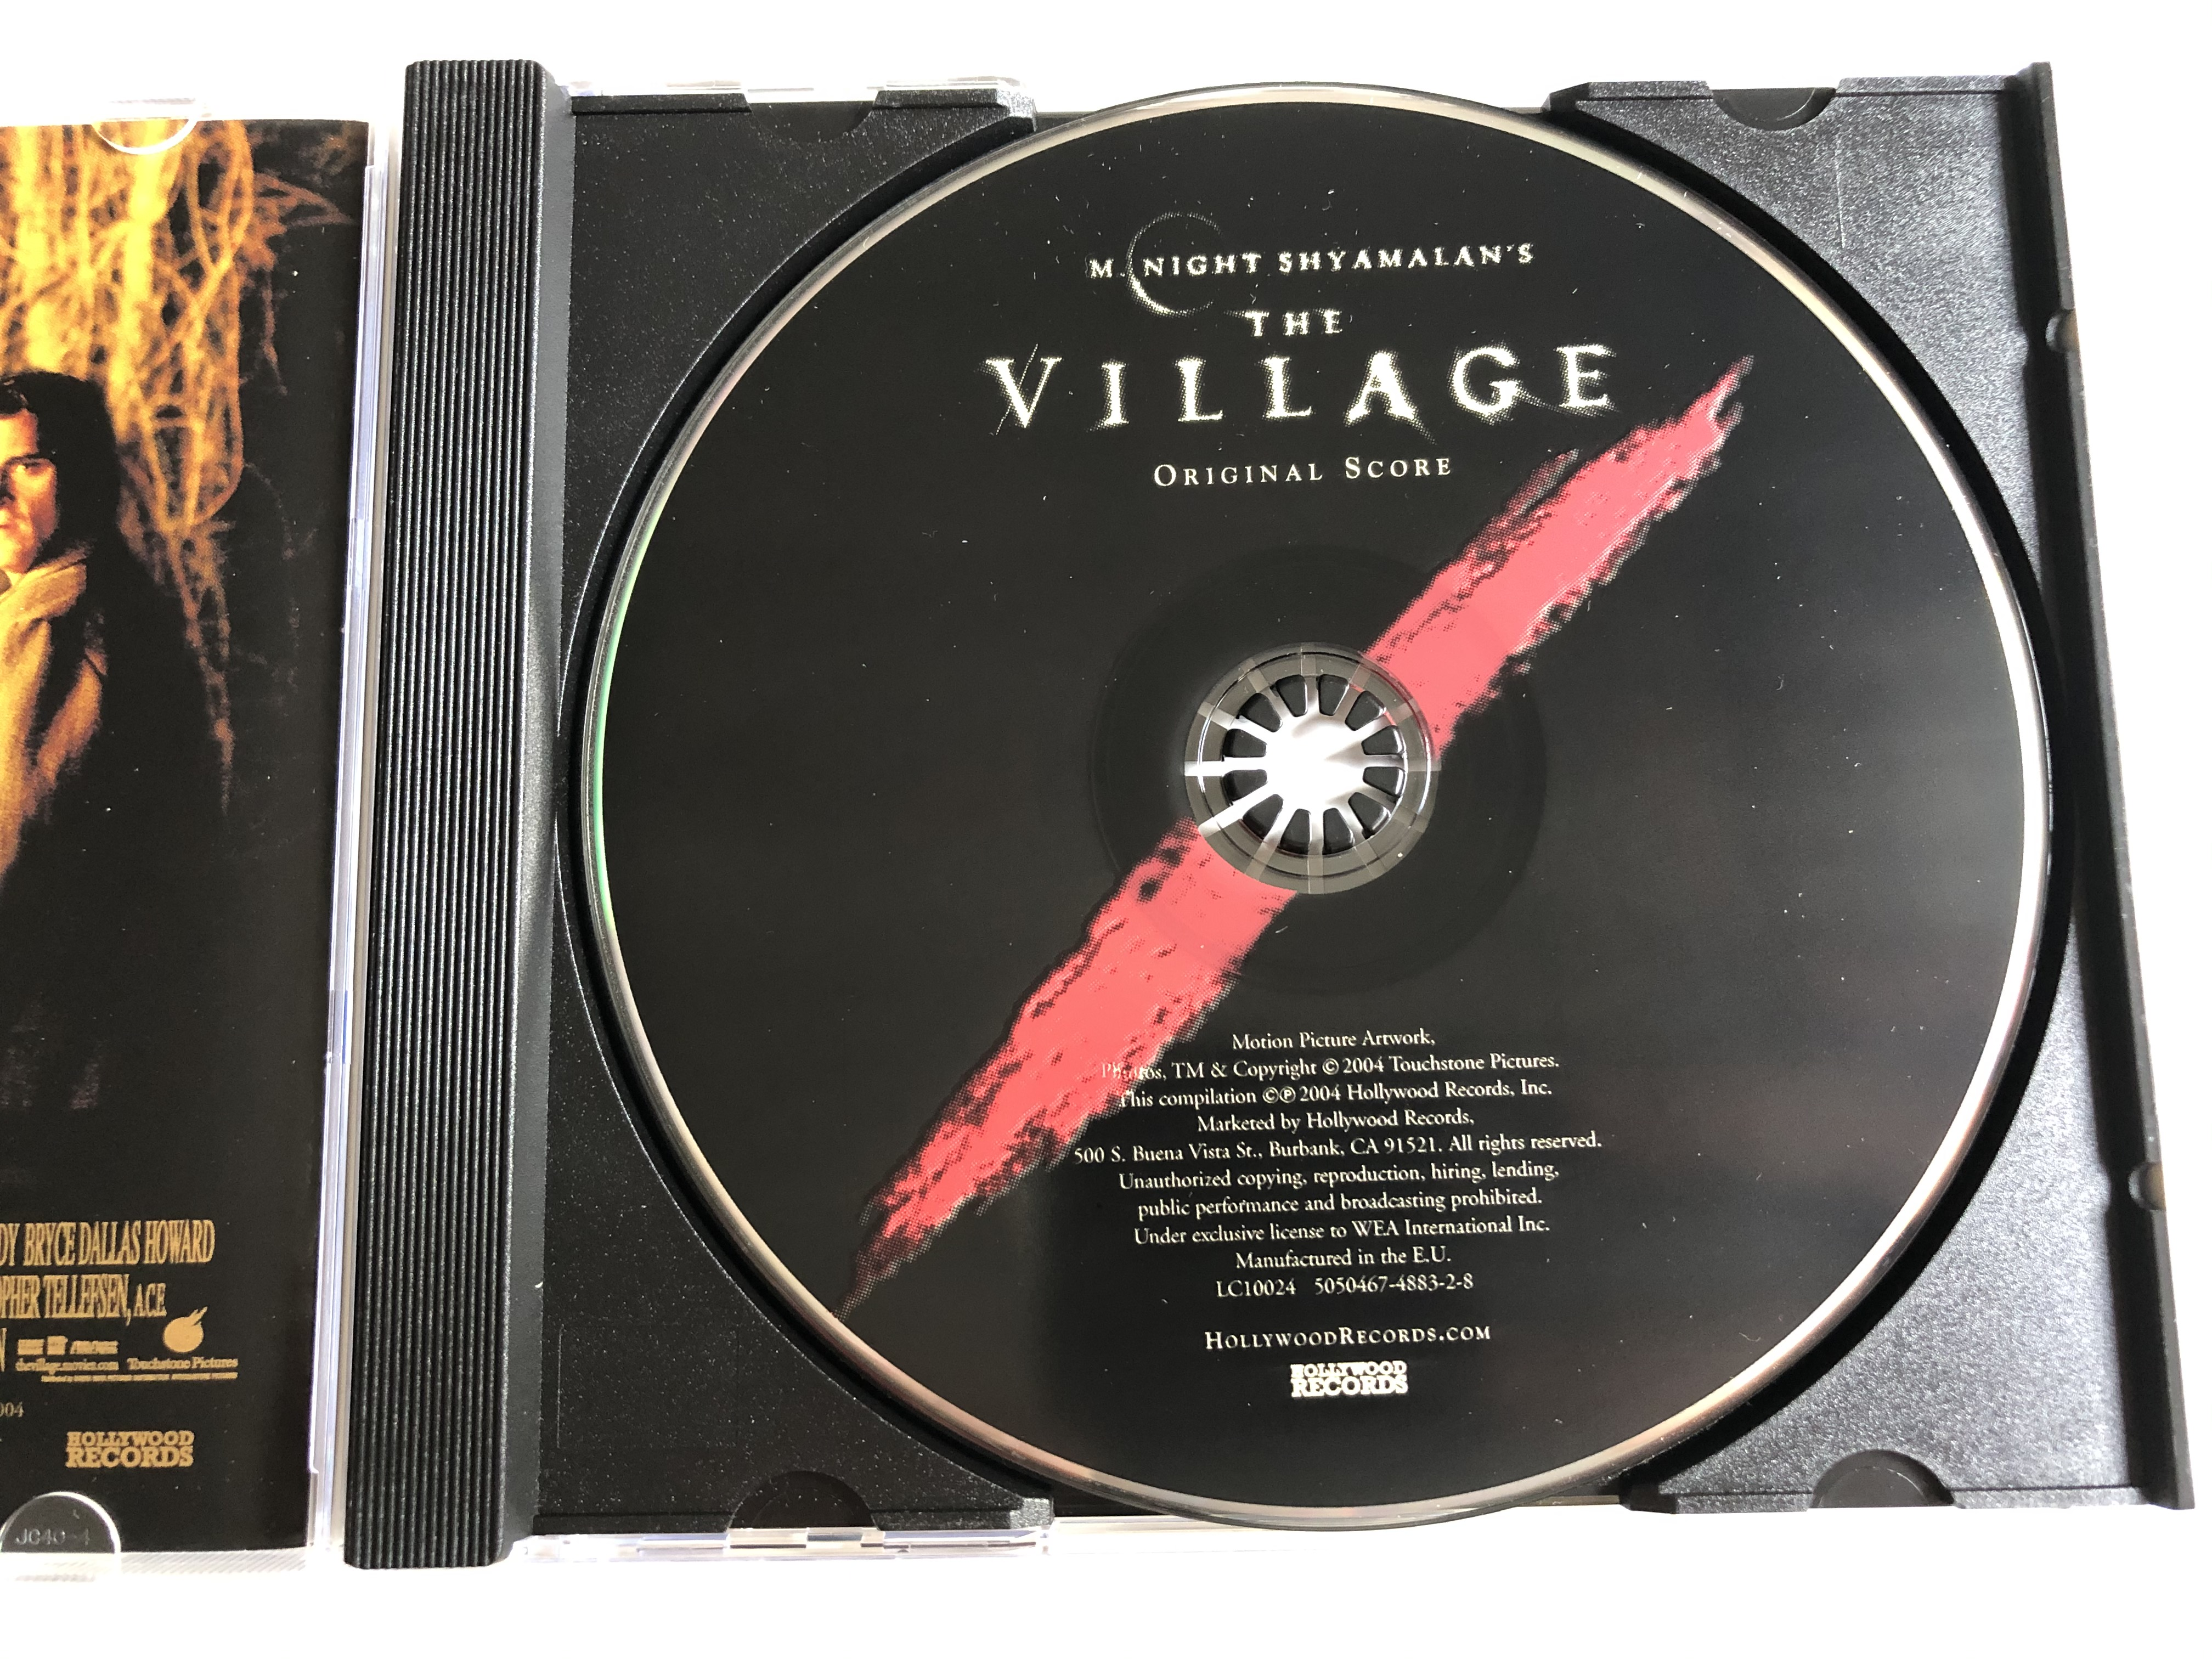 m.-night-shyamalan-s-the-village-music-composed-by-james-newton-howard-featured-violinist-hilary-hahn-hollywood-records-audio-cd-2004-5050467-4883-2-8-5-.jpg